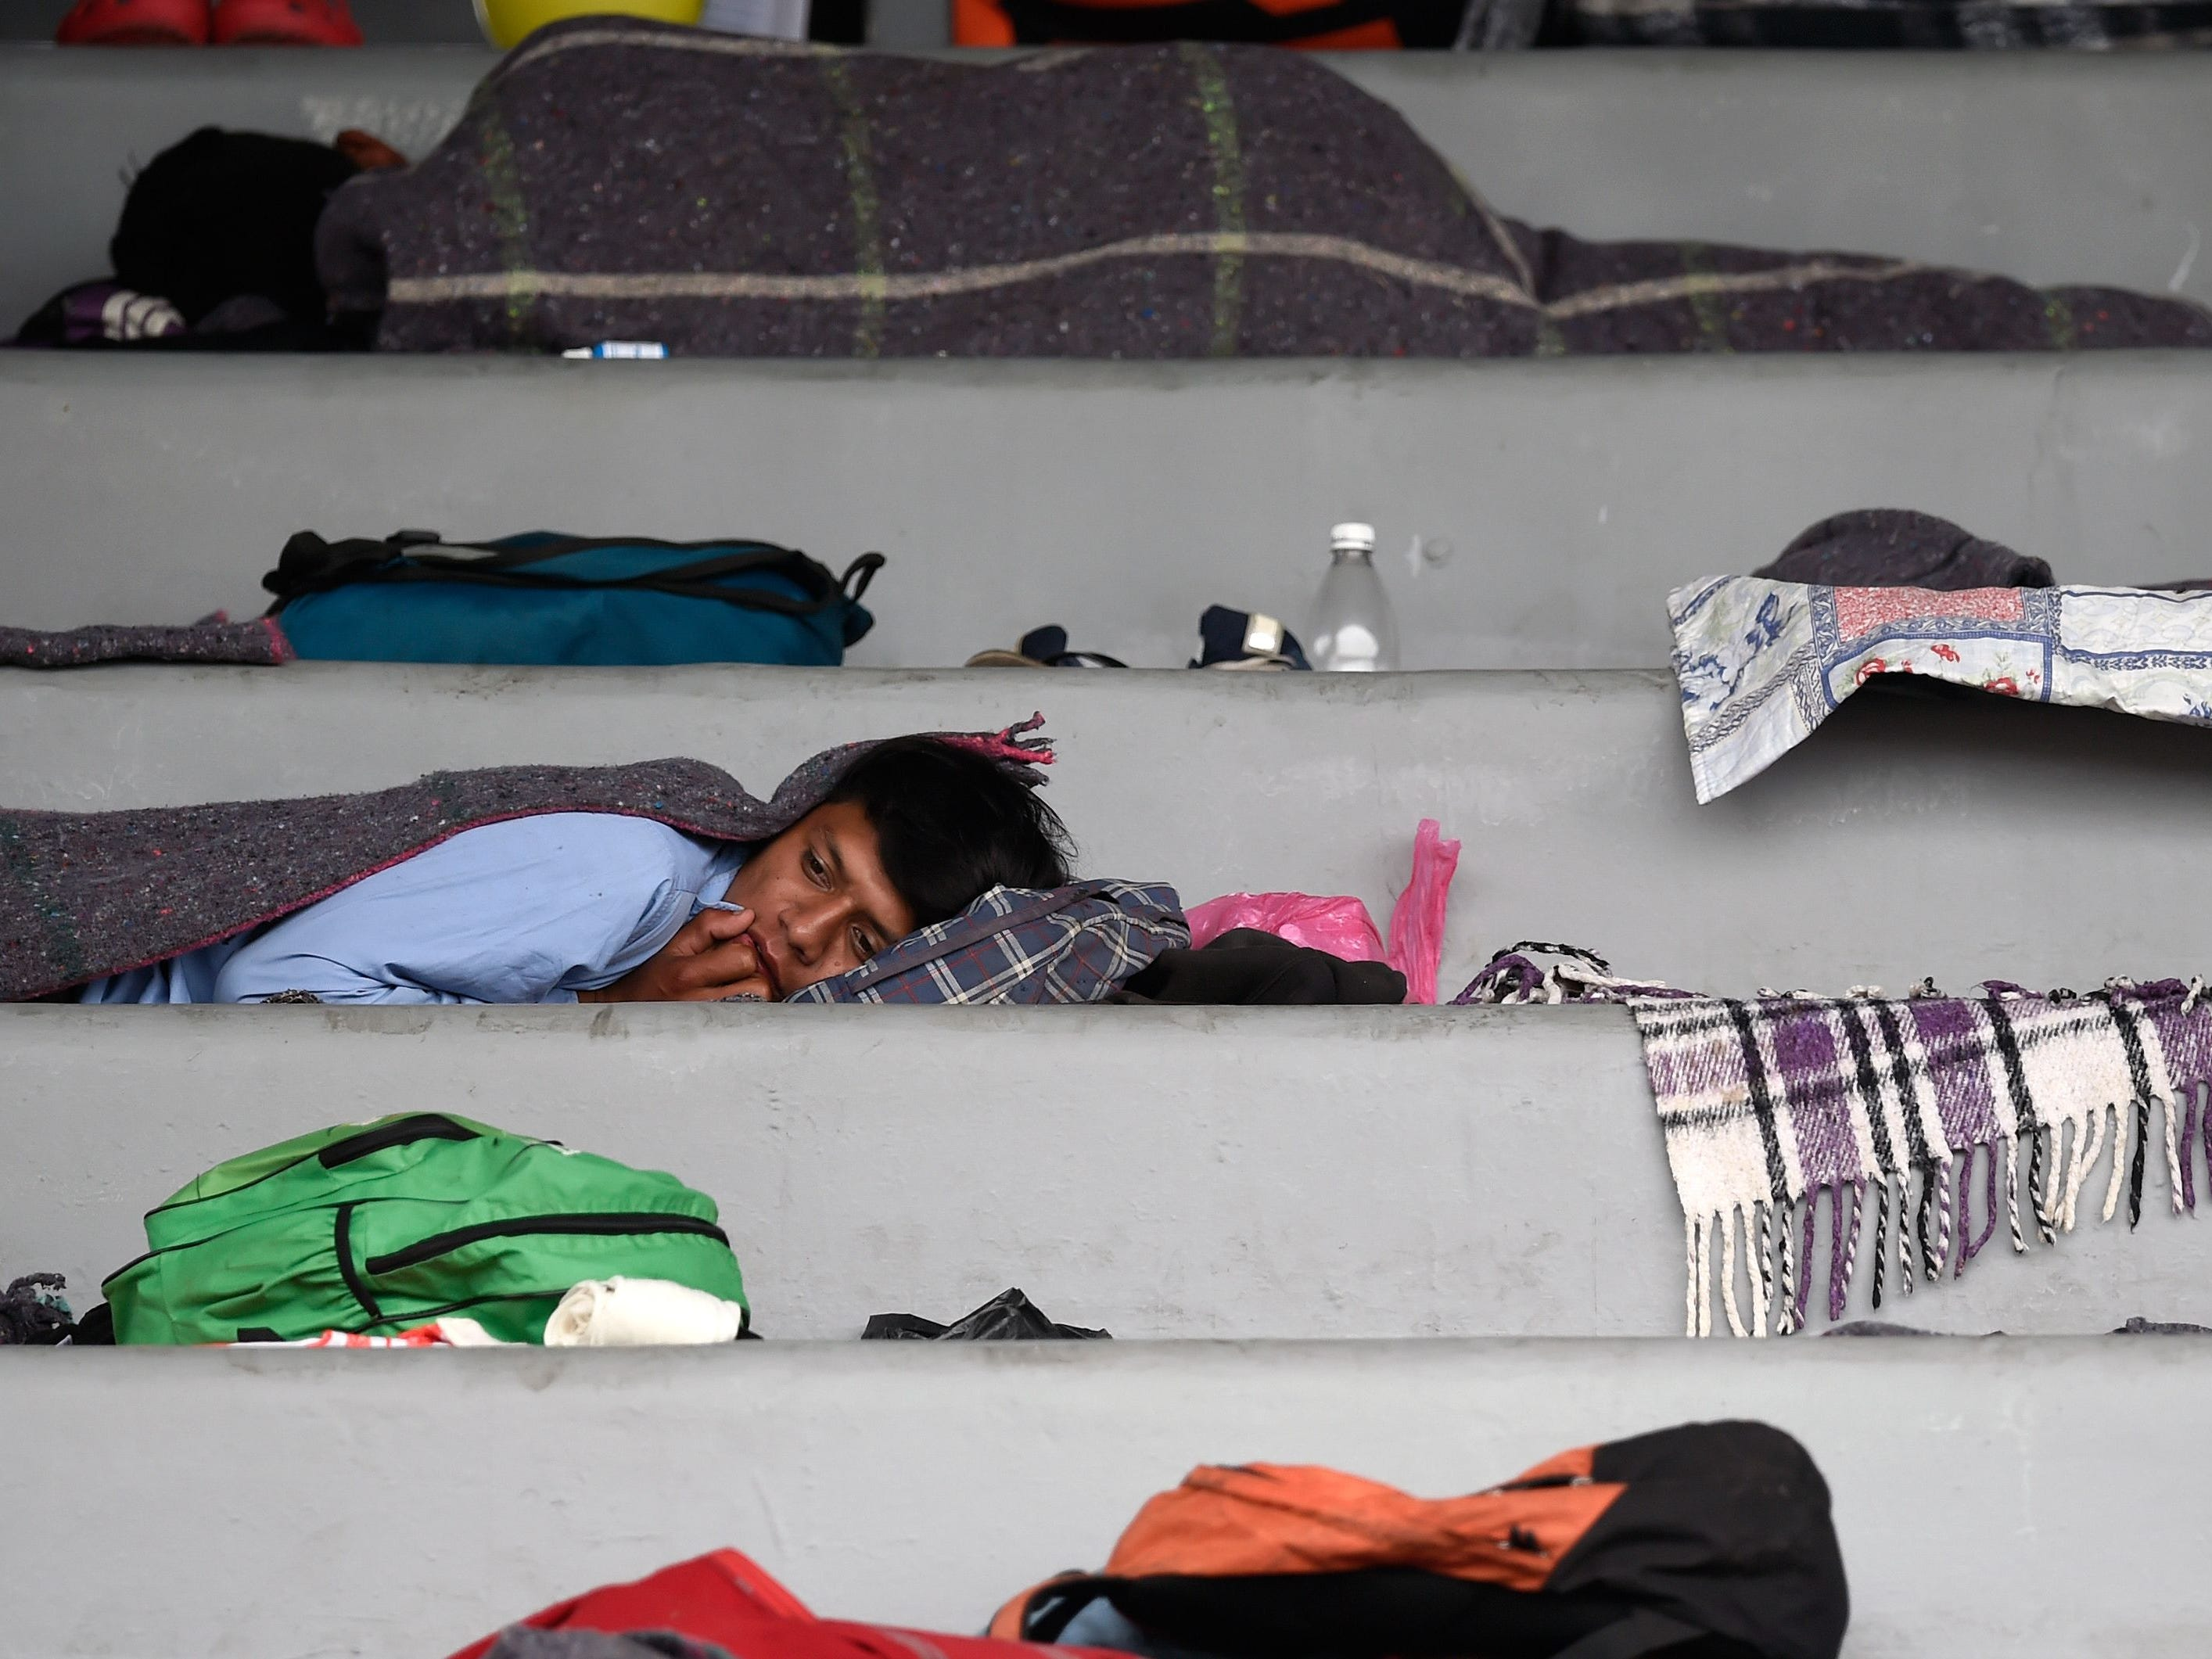 Migrants from Central American countries  headed towards the United States in hopes of a better life or to escape violence make a stop at a temporary shelter at a sports complex in Mexico City, on Nov. 4, 2018.